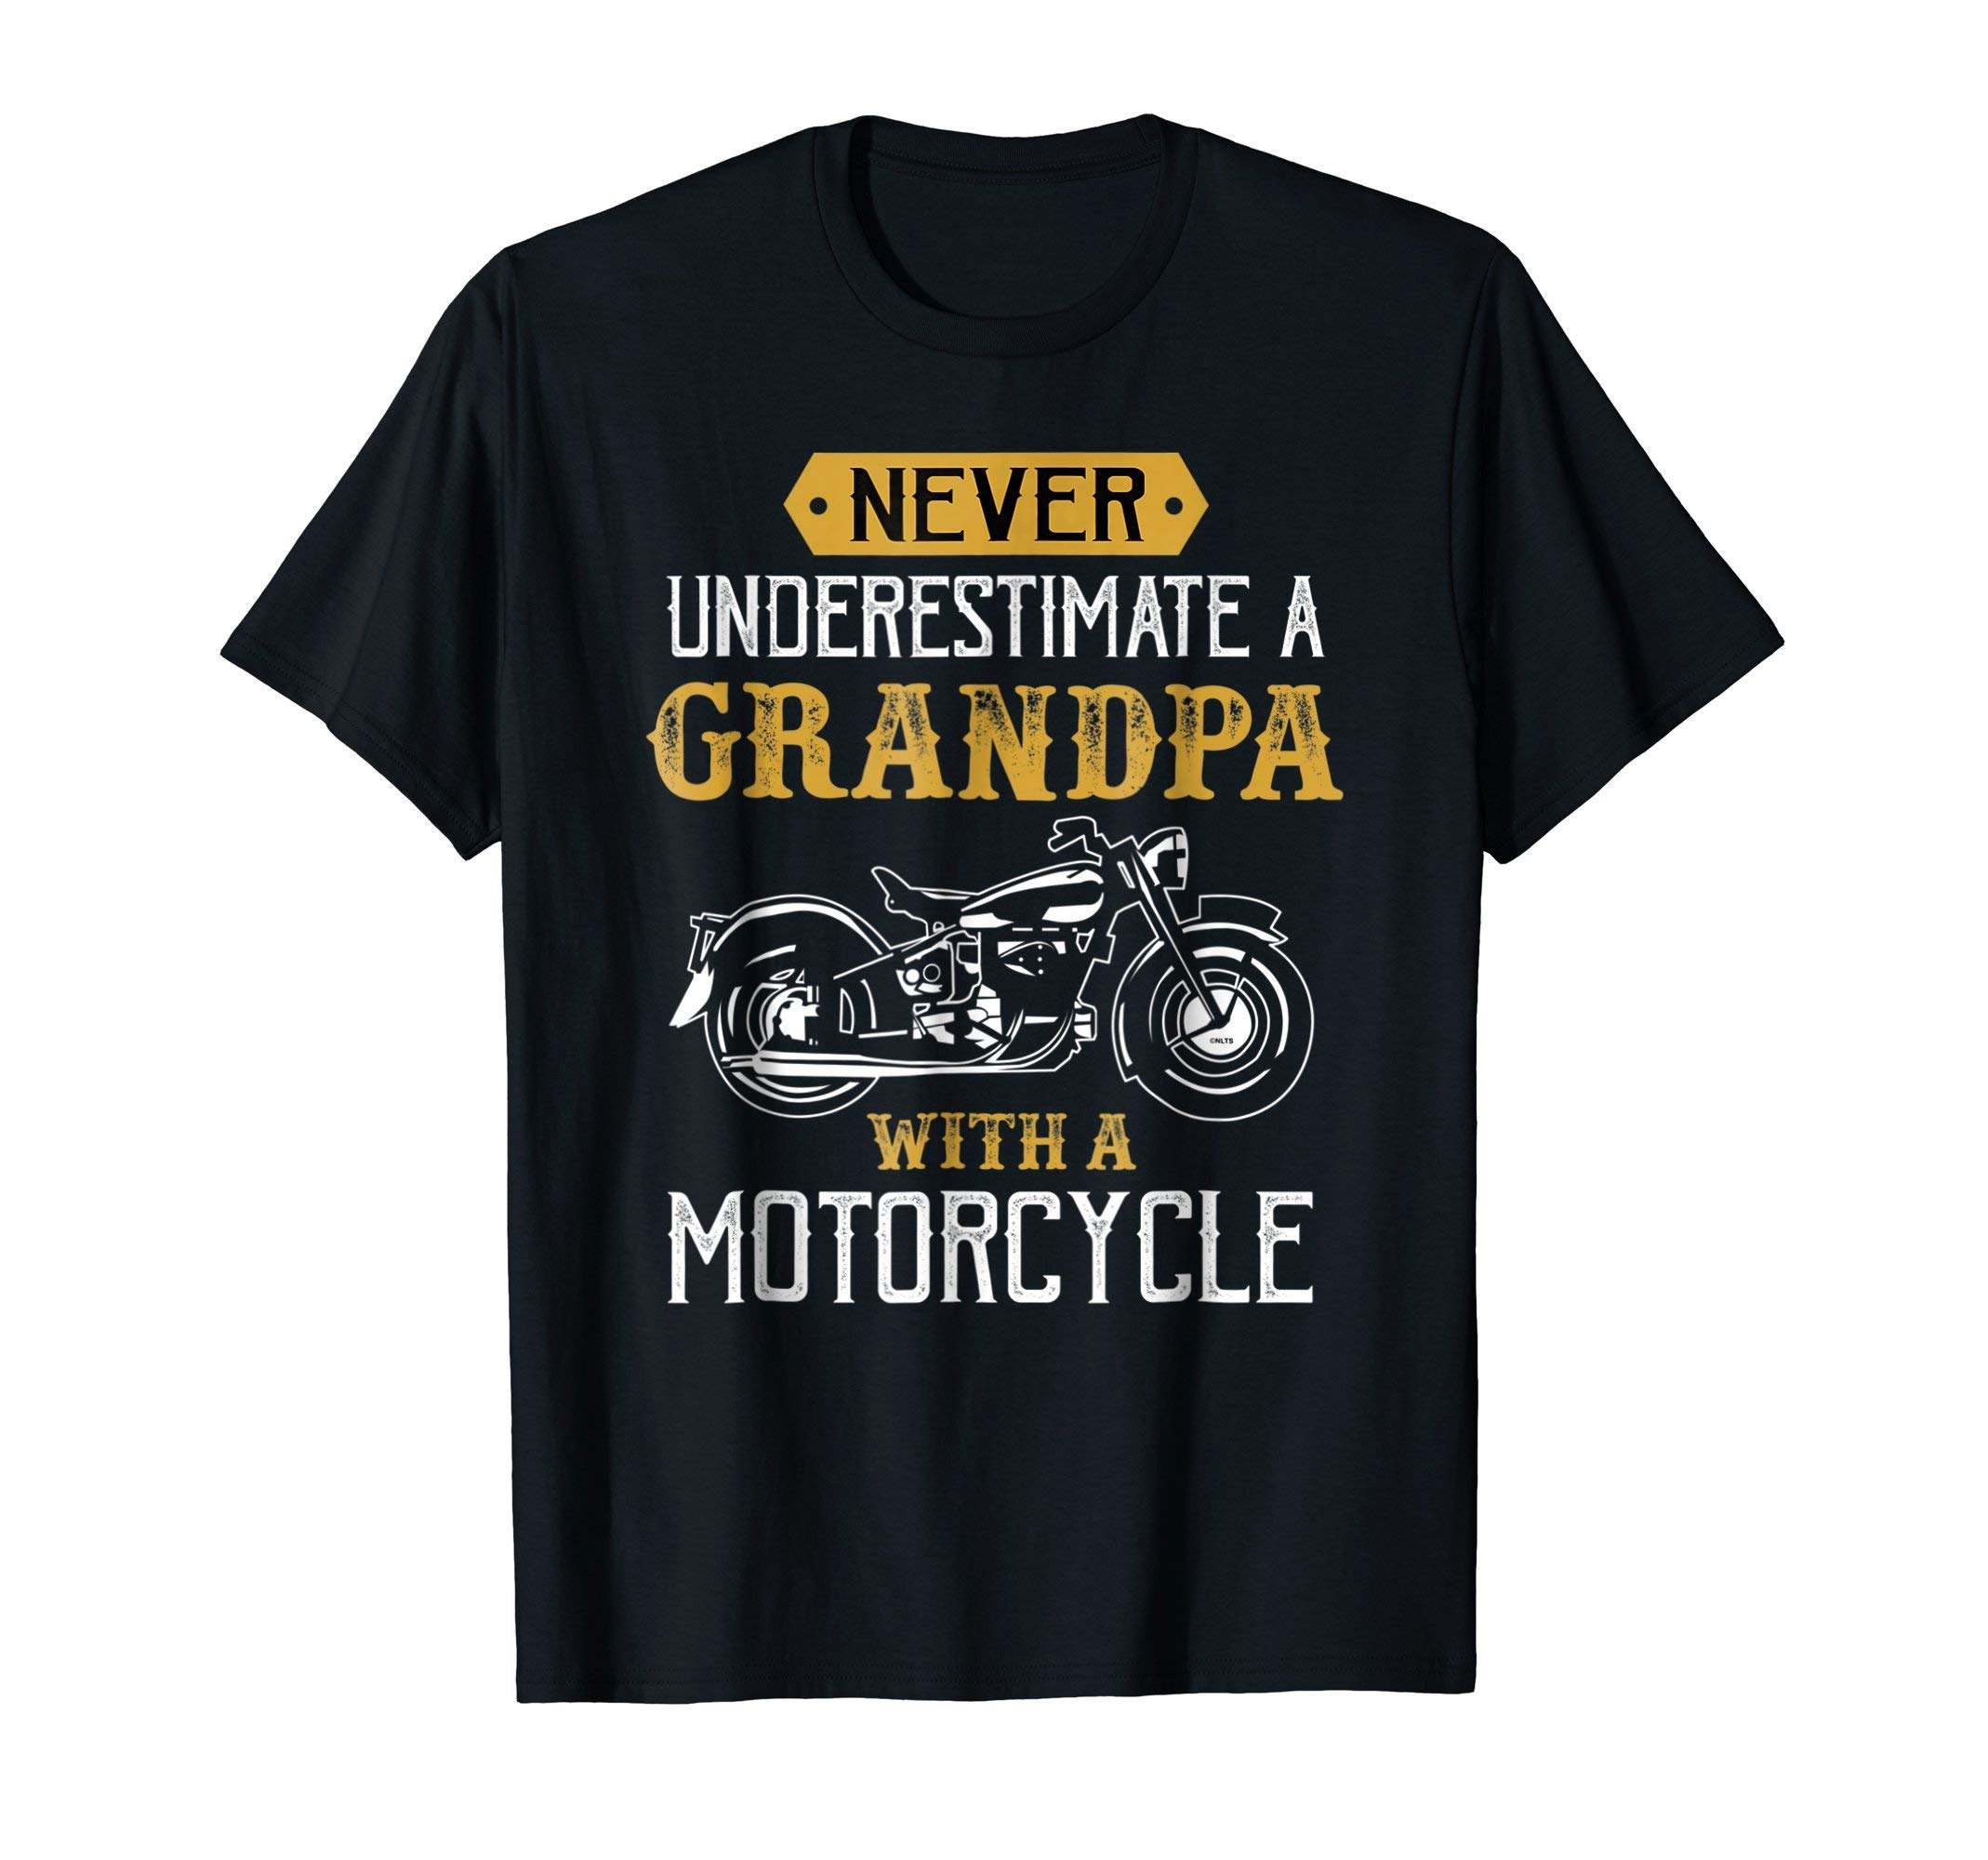 Never-Underestimate-a-Grandpa-with-a-motorcycle-T-Shirt-Gift